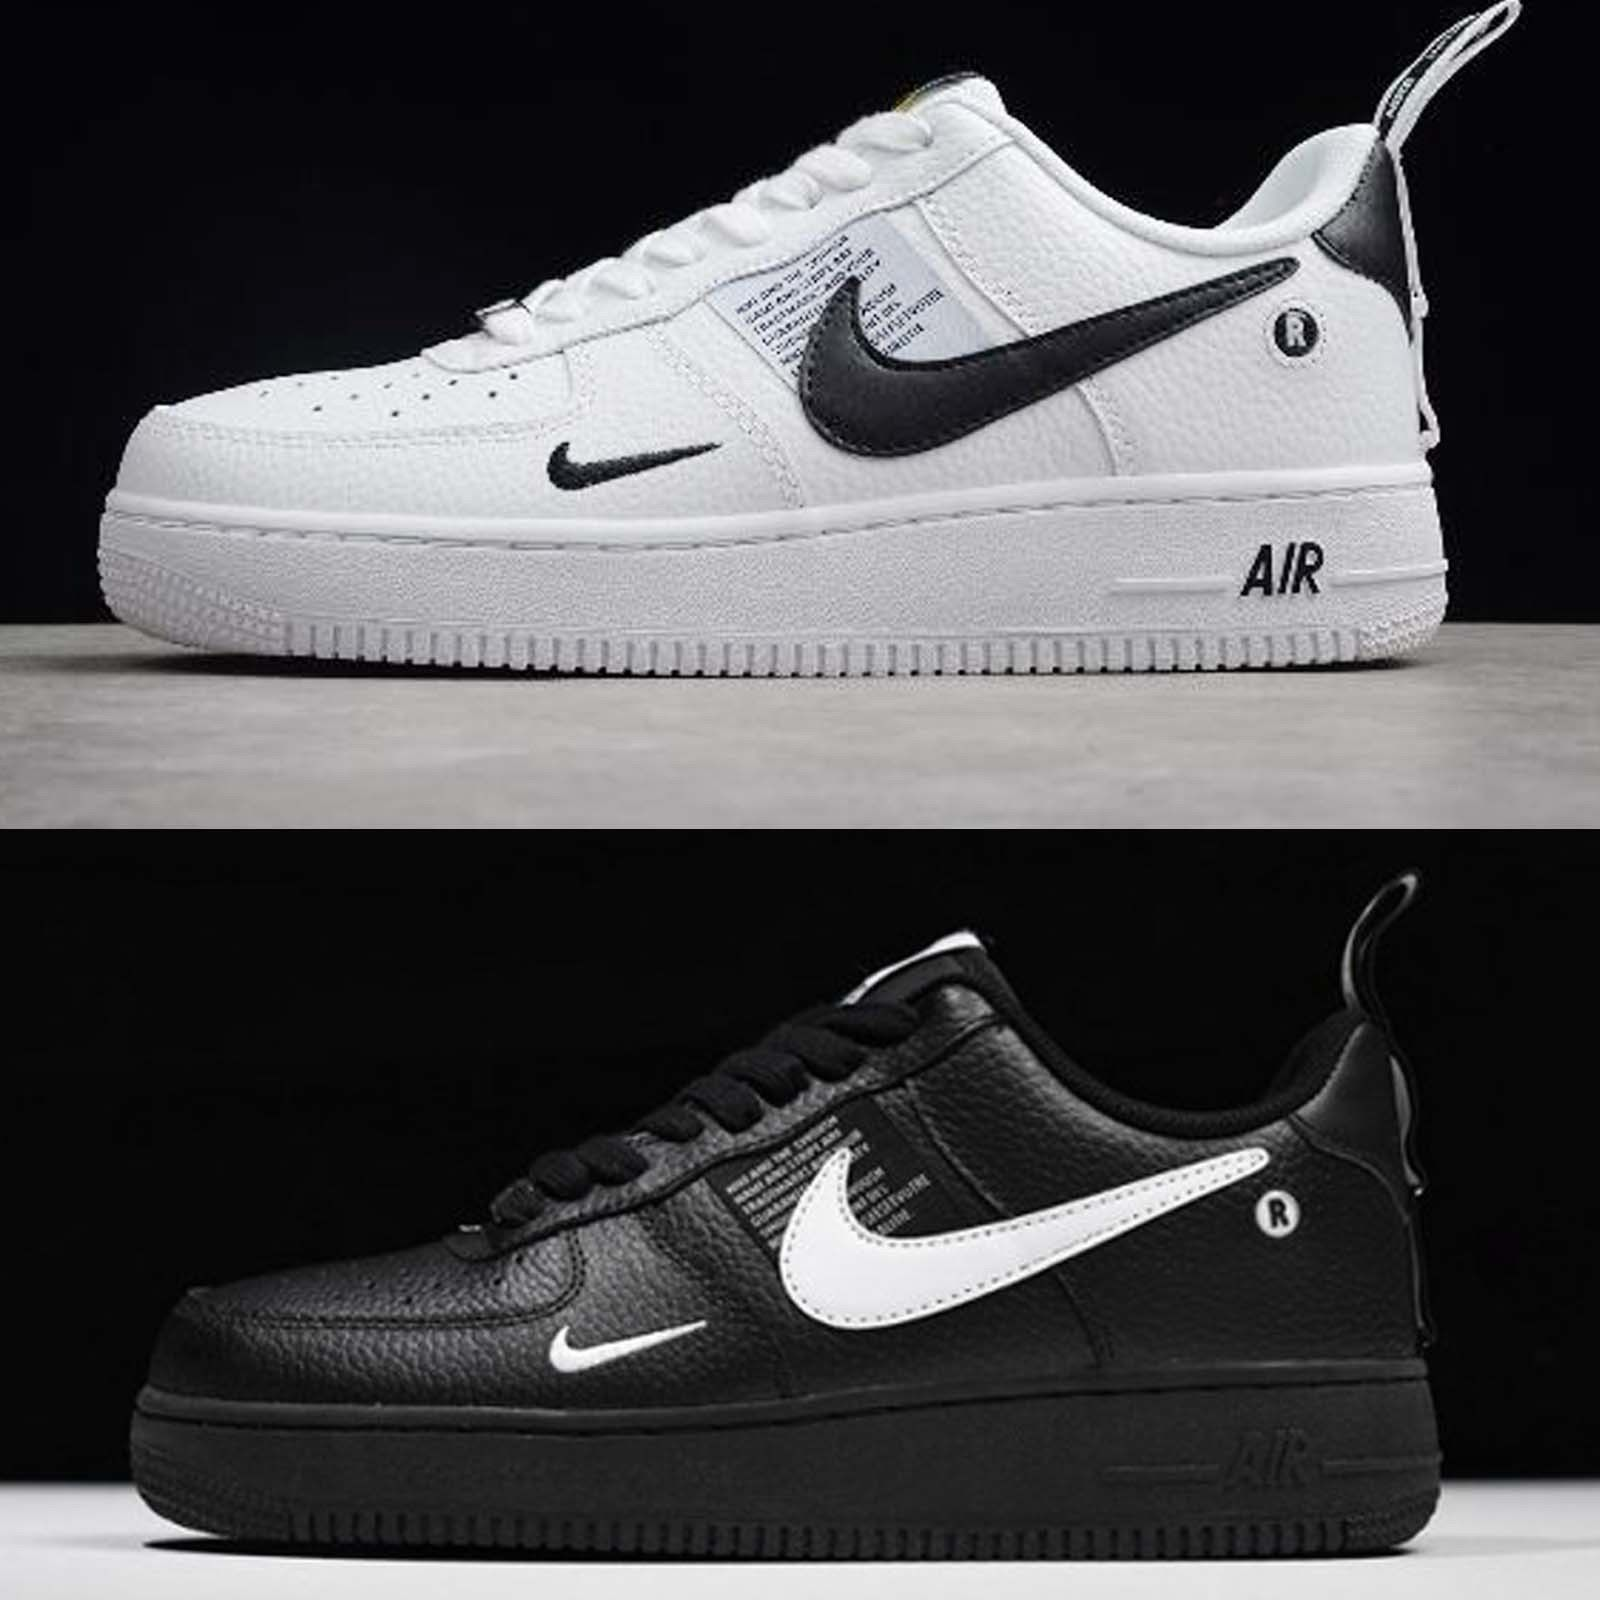 0f8db44b98 Nike Air Force 1 07 LV8 utility back and white | Shoes in 2019 ...